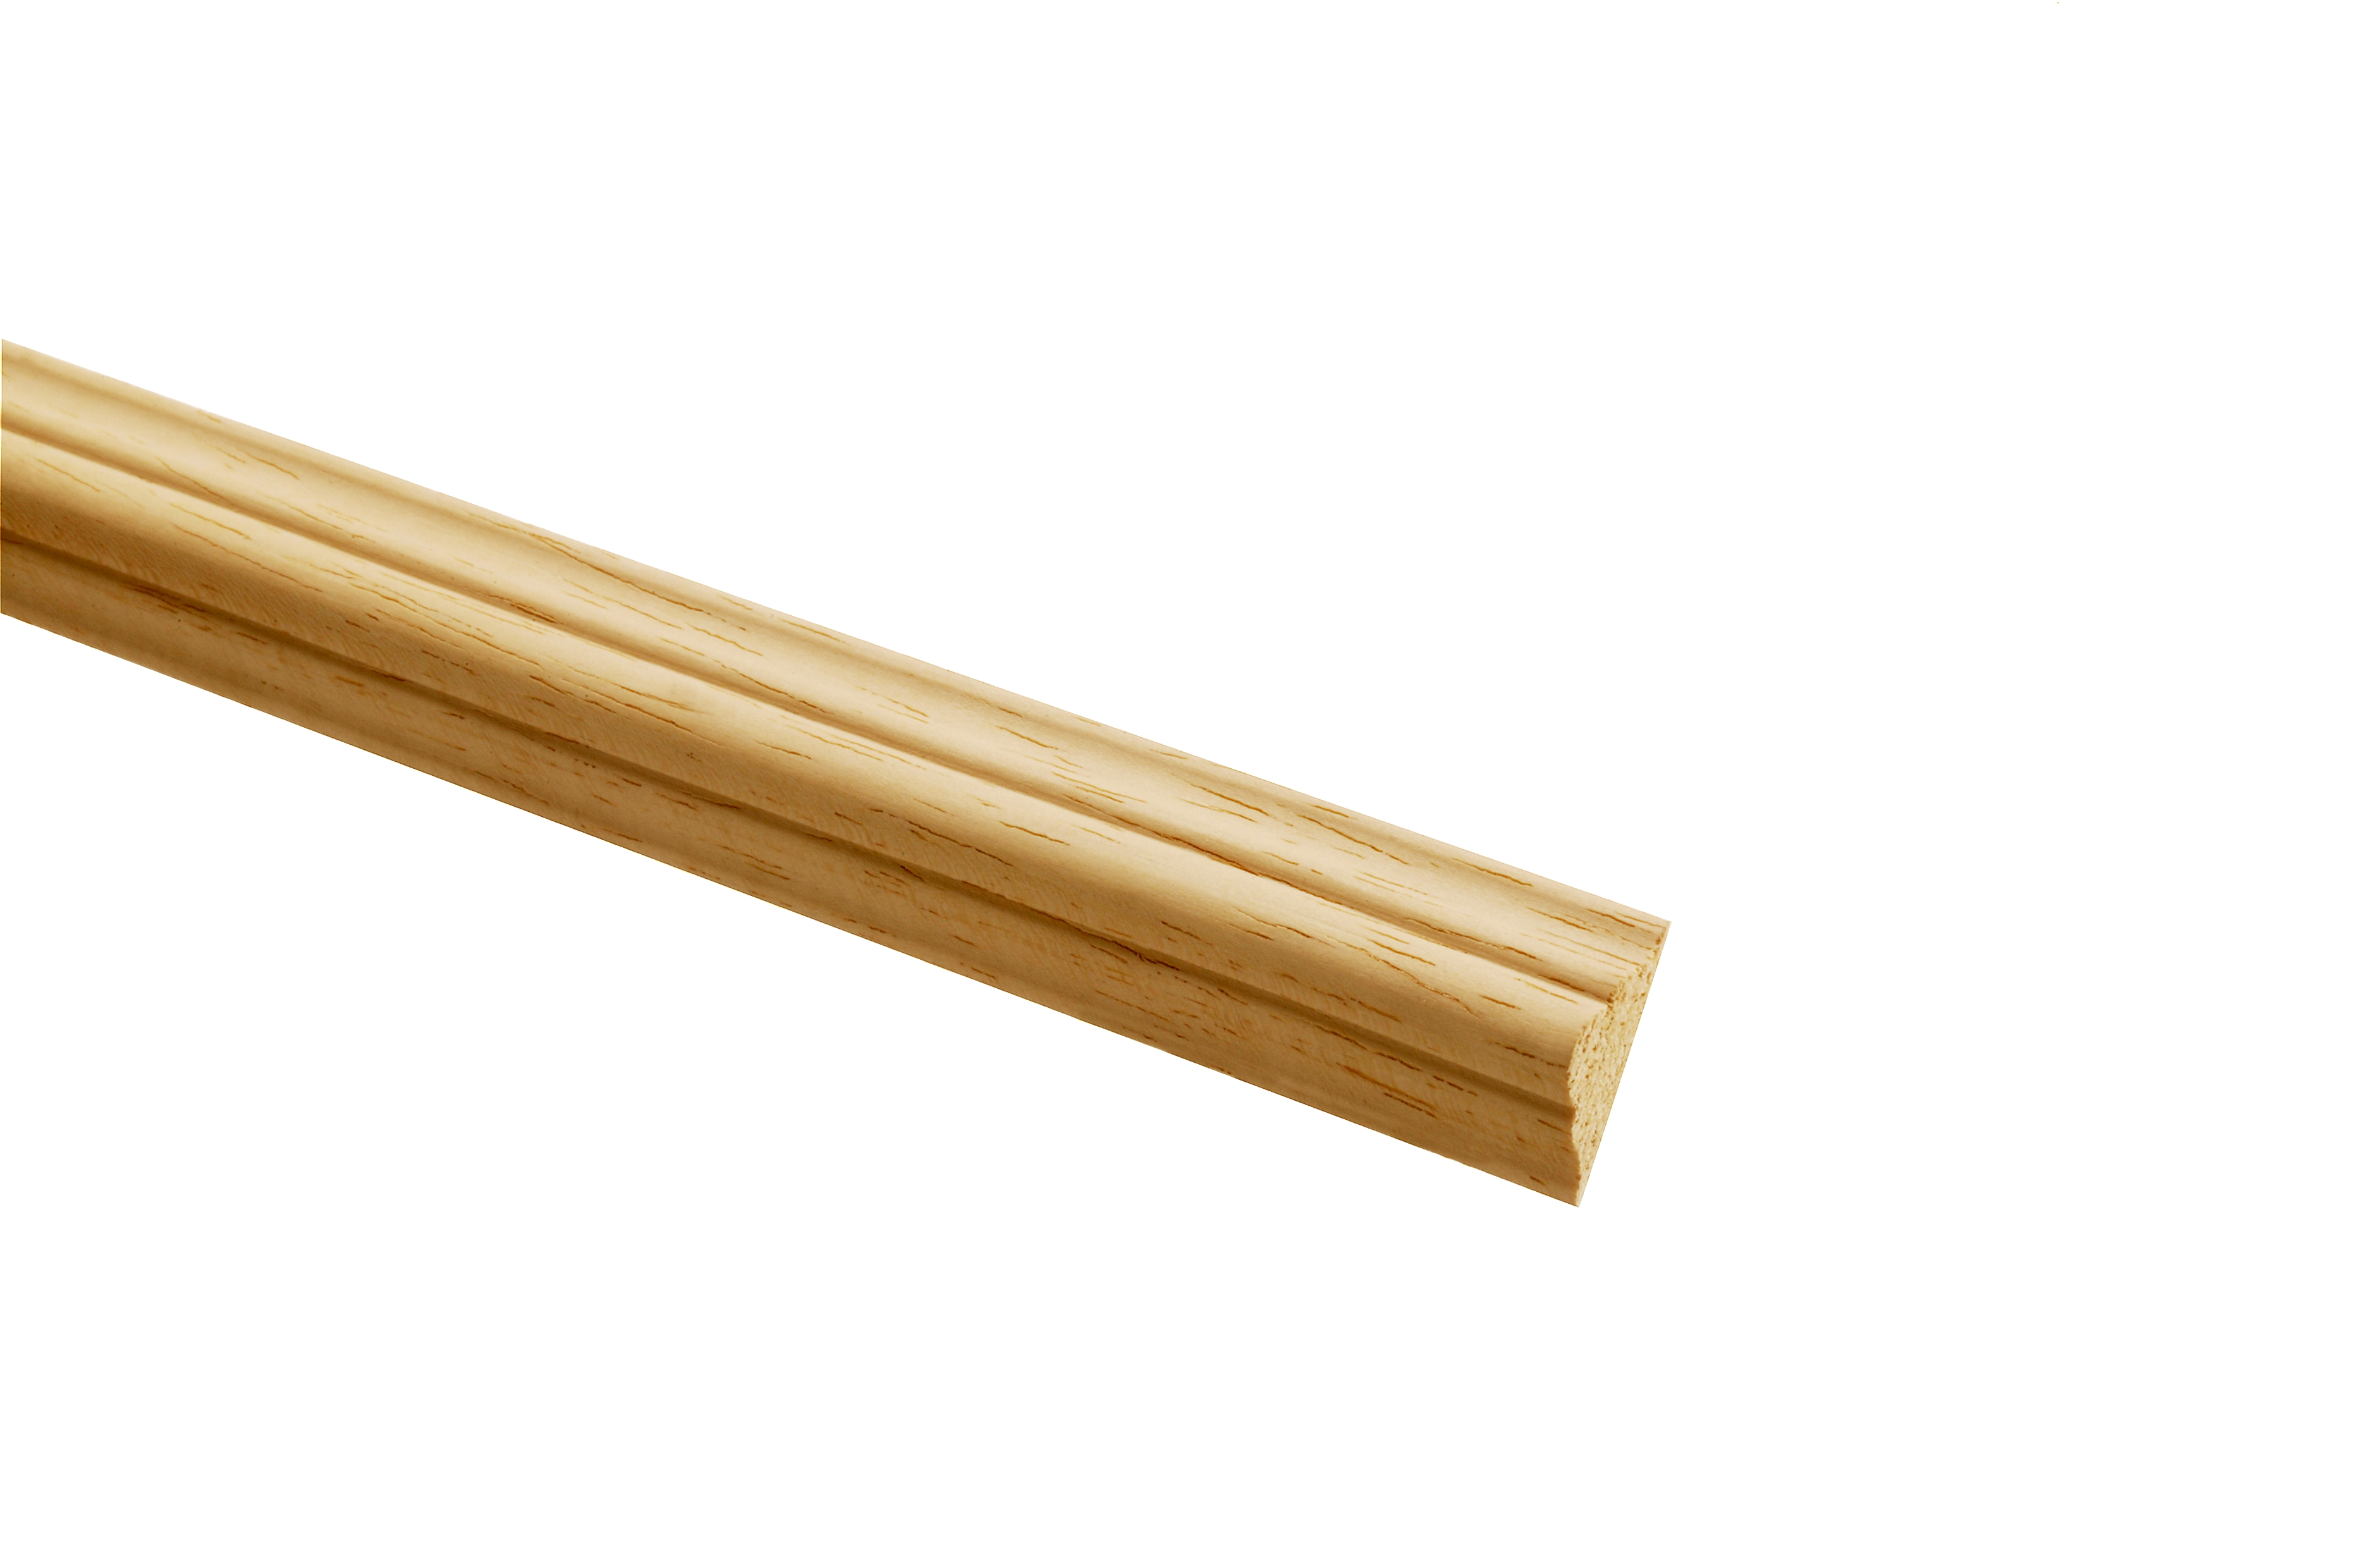 24 Pine Double Astragal Mouldings 8 x 21 x 2400mm